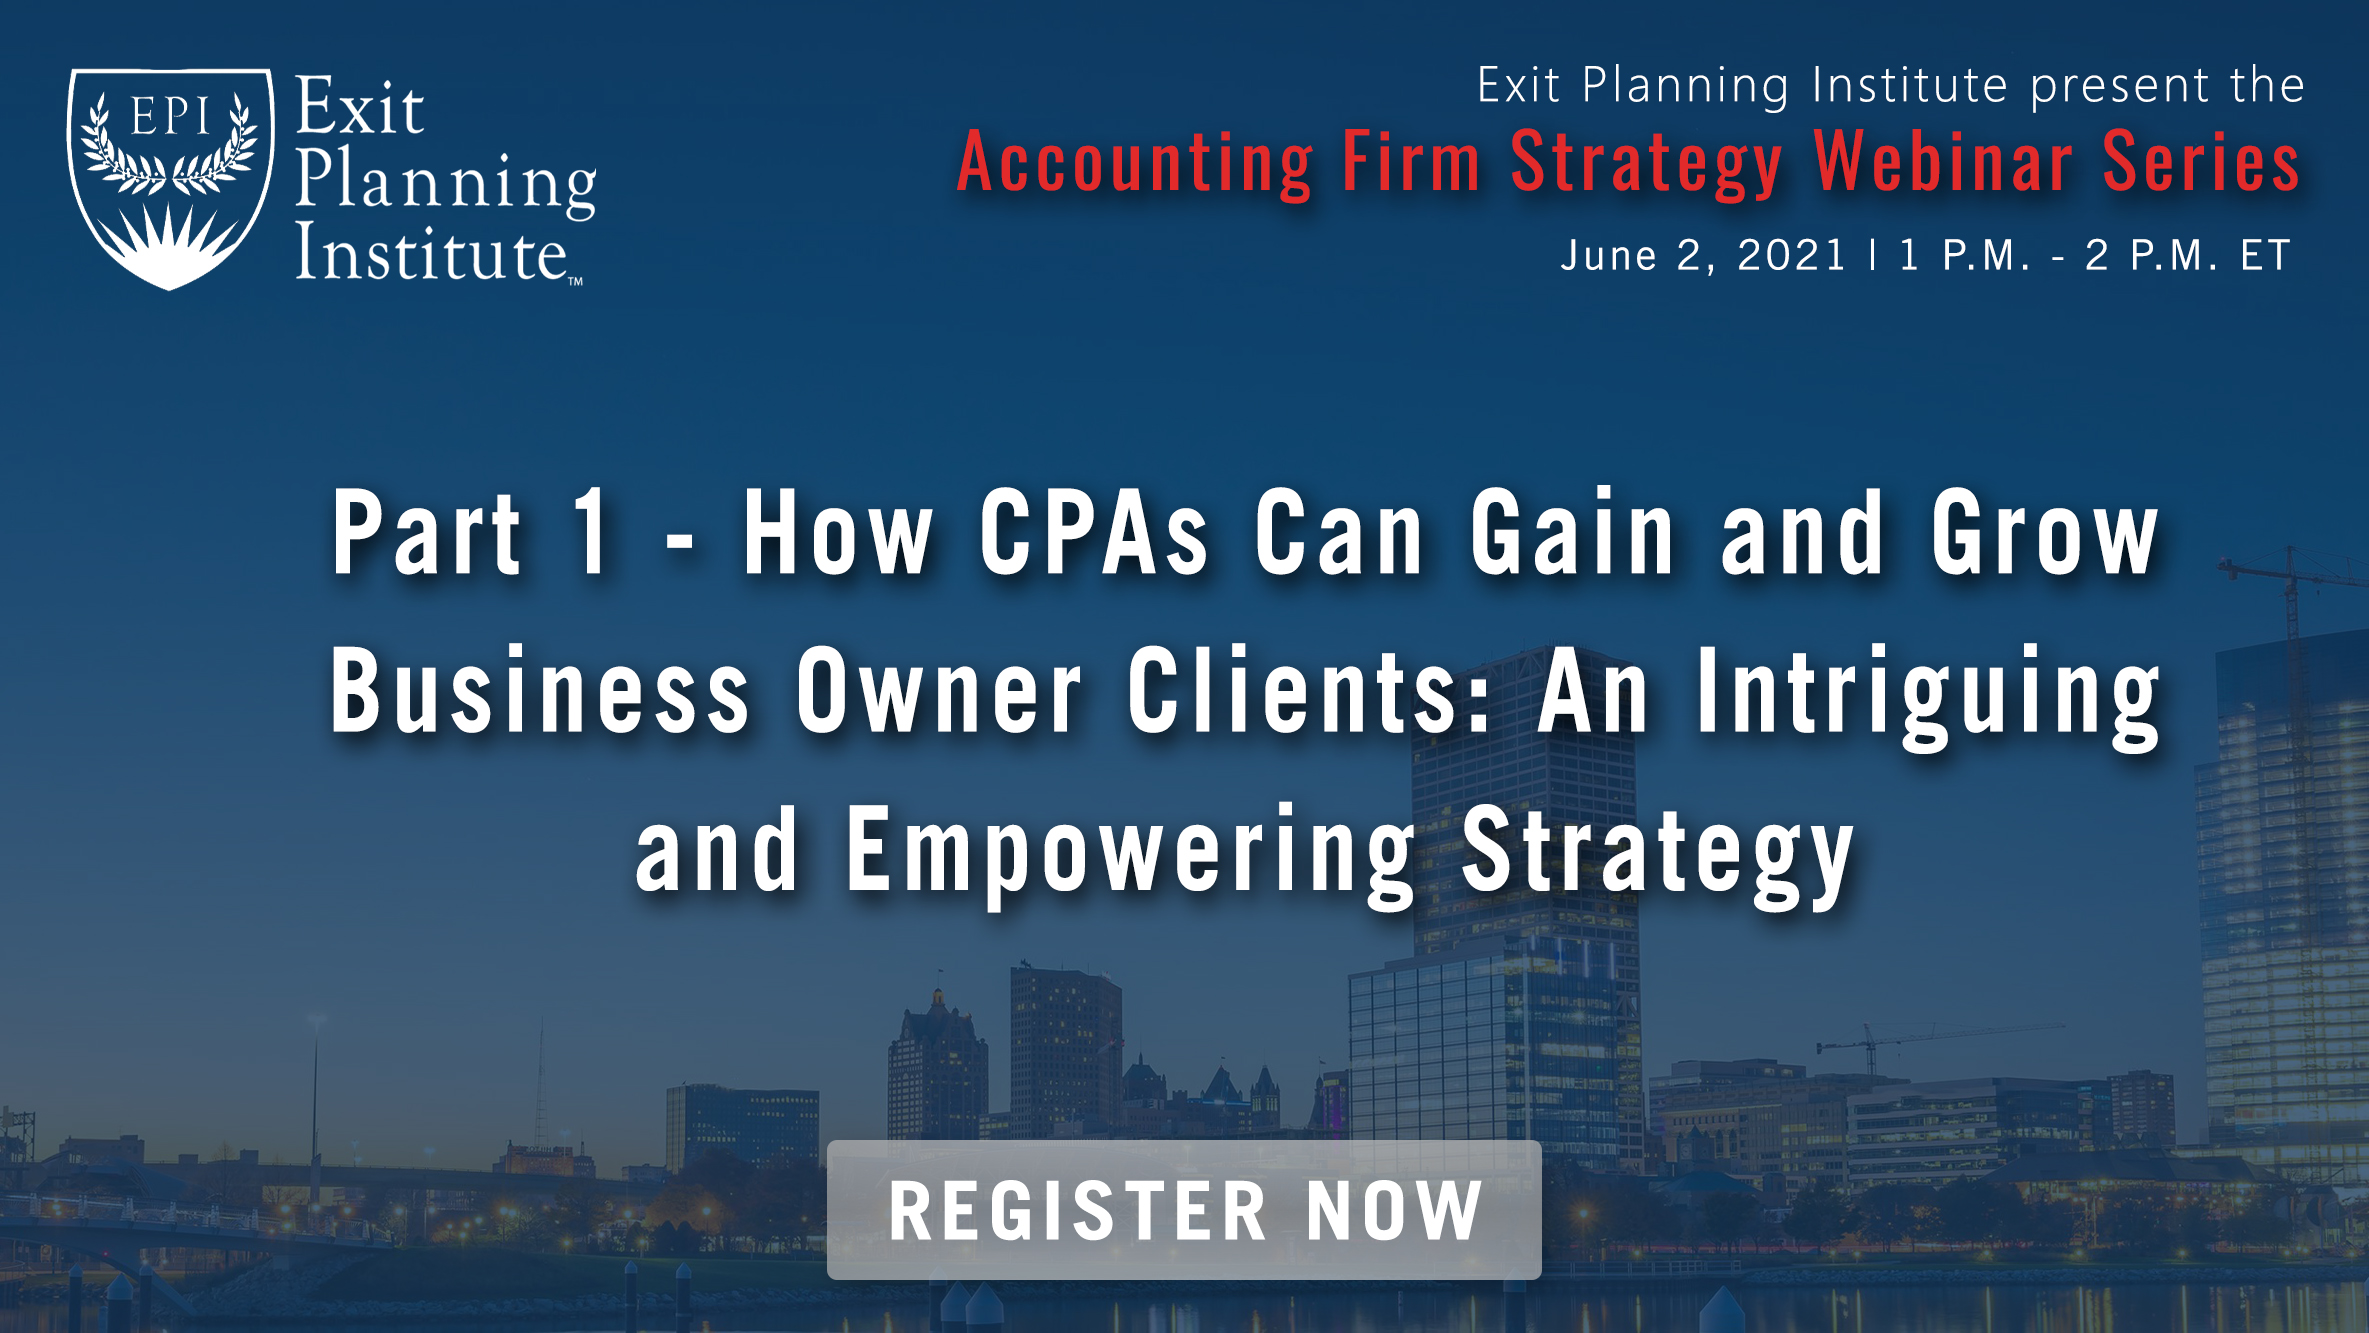 Part 1: How CPAs Can Gain and Grow Business Owner Clients